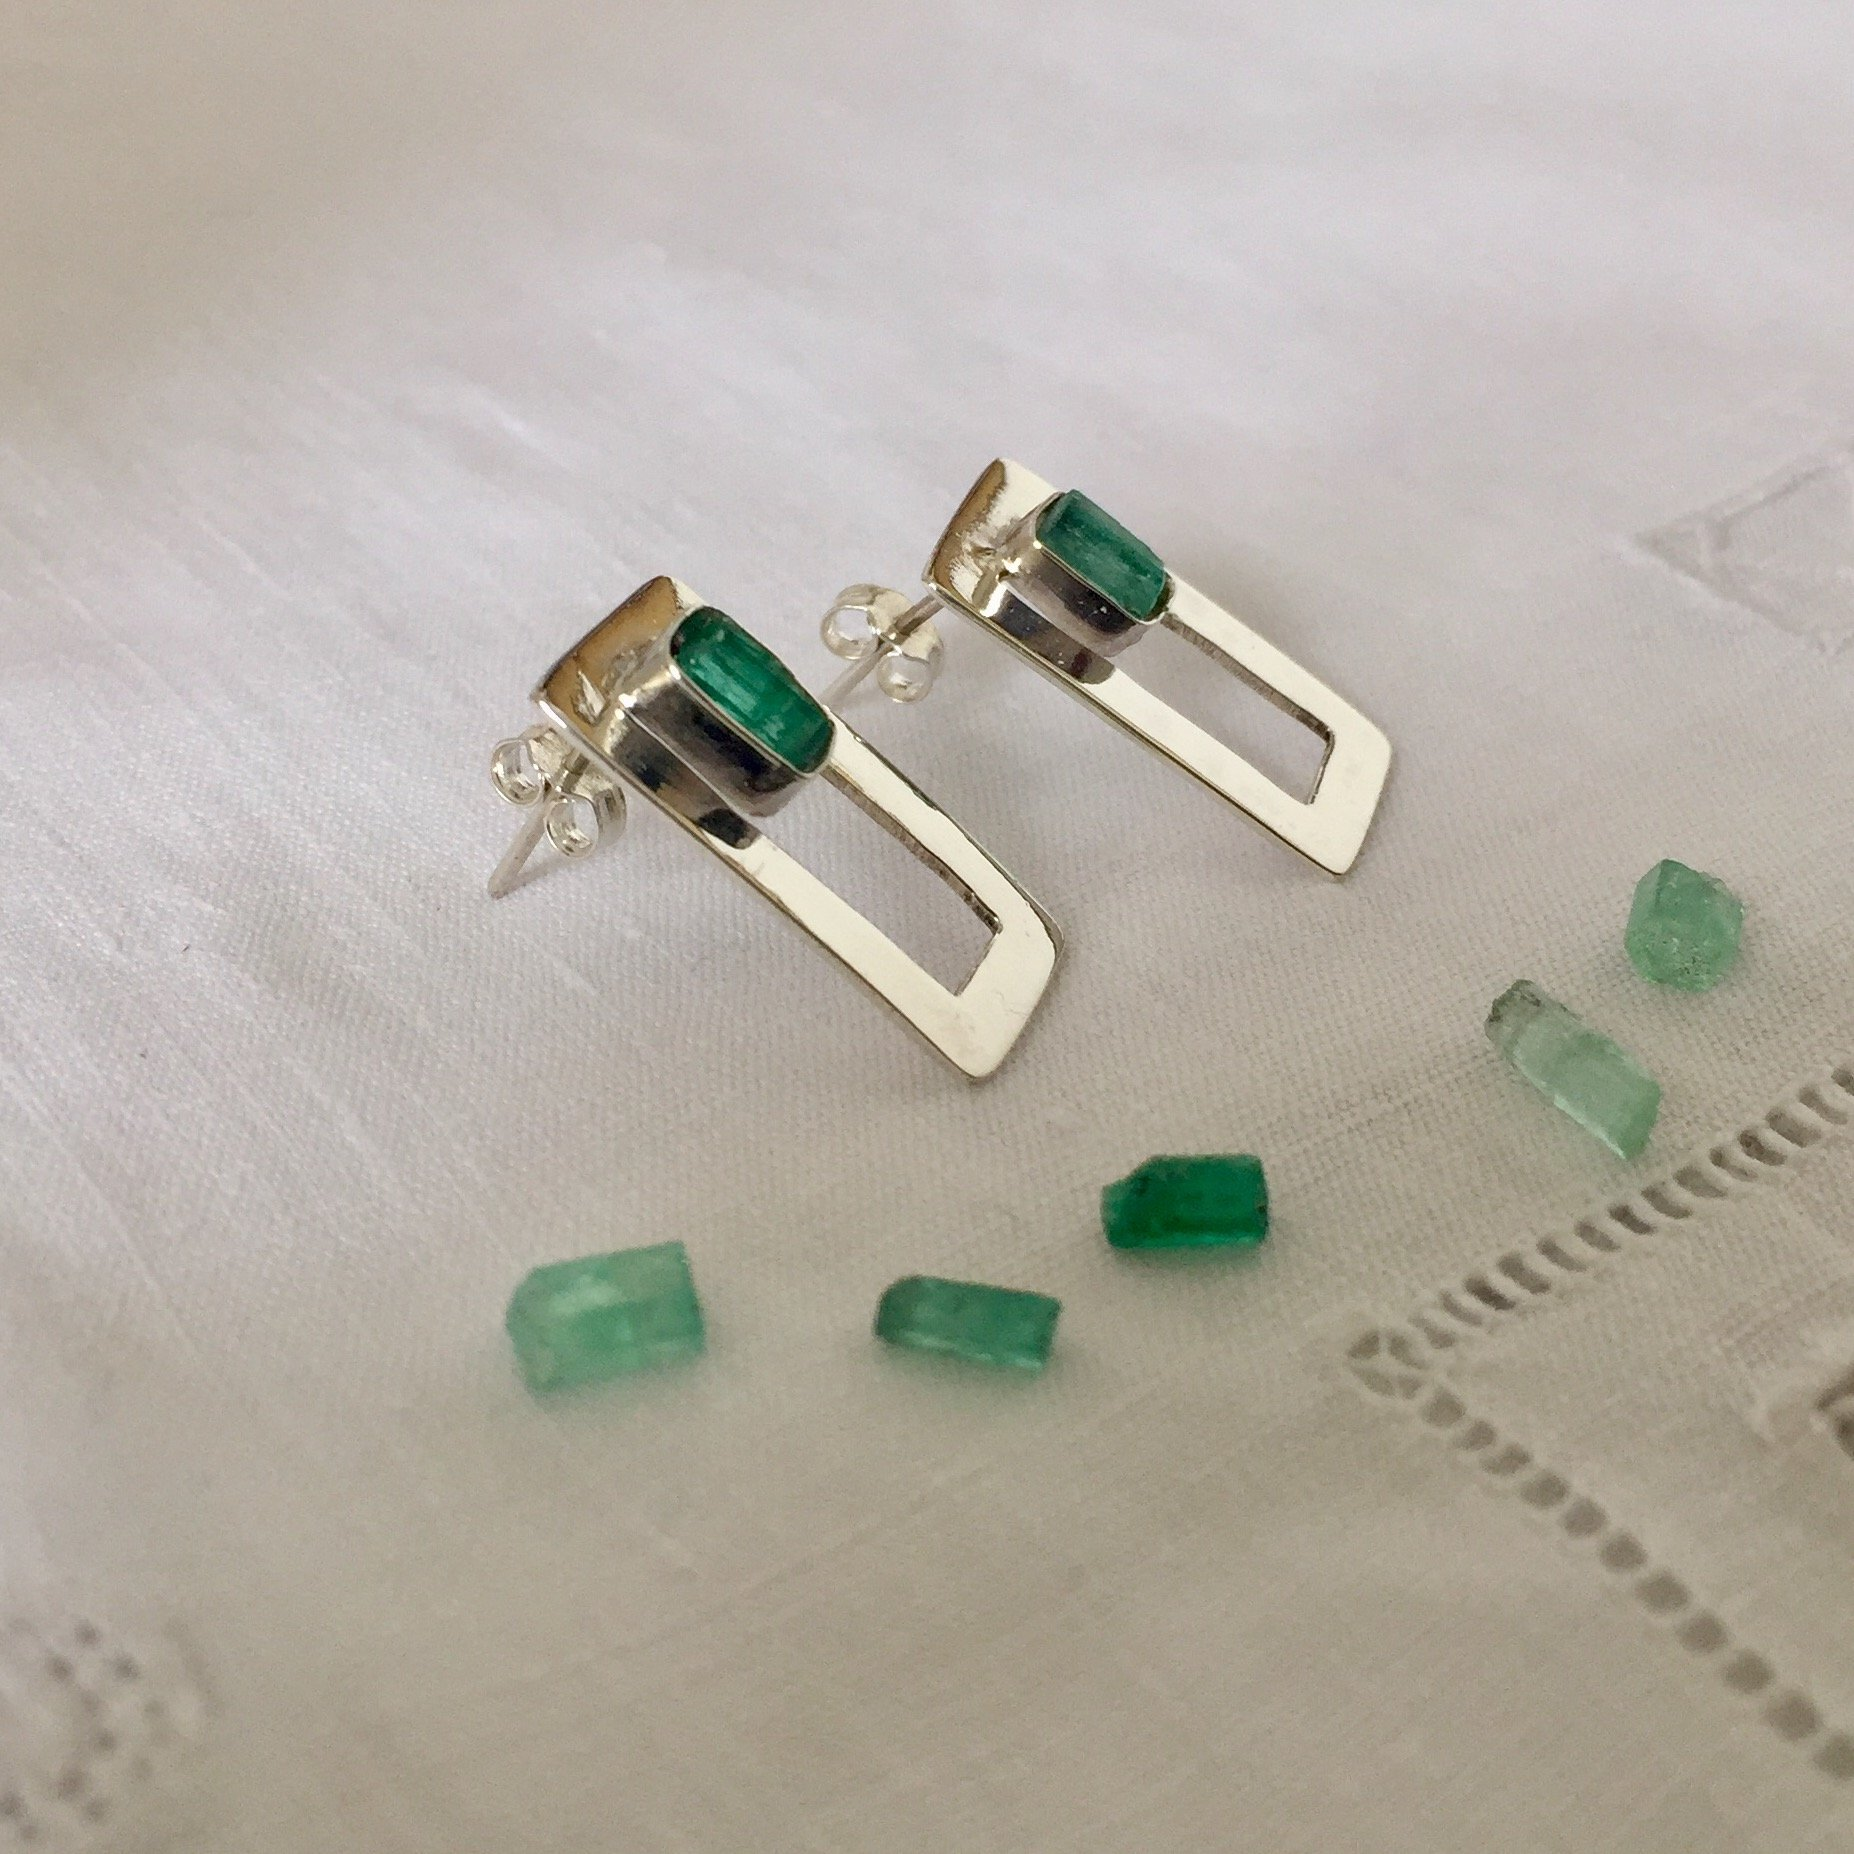 Raw Emerald Stud Earrings by D'Mundo Accesorios. Genuine Raw Colombian Emeralds with Pyrite and Quartz. 925 Sterling Silver Rectangles Earrings.